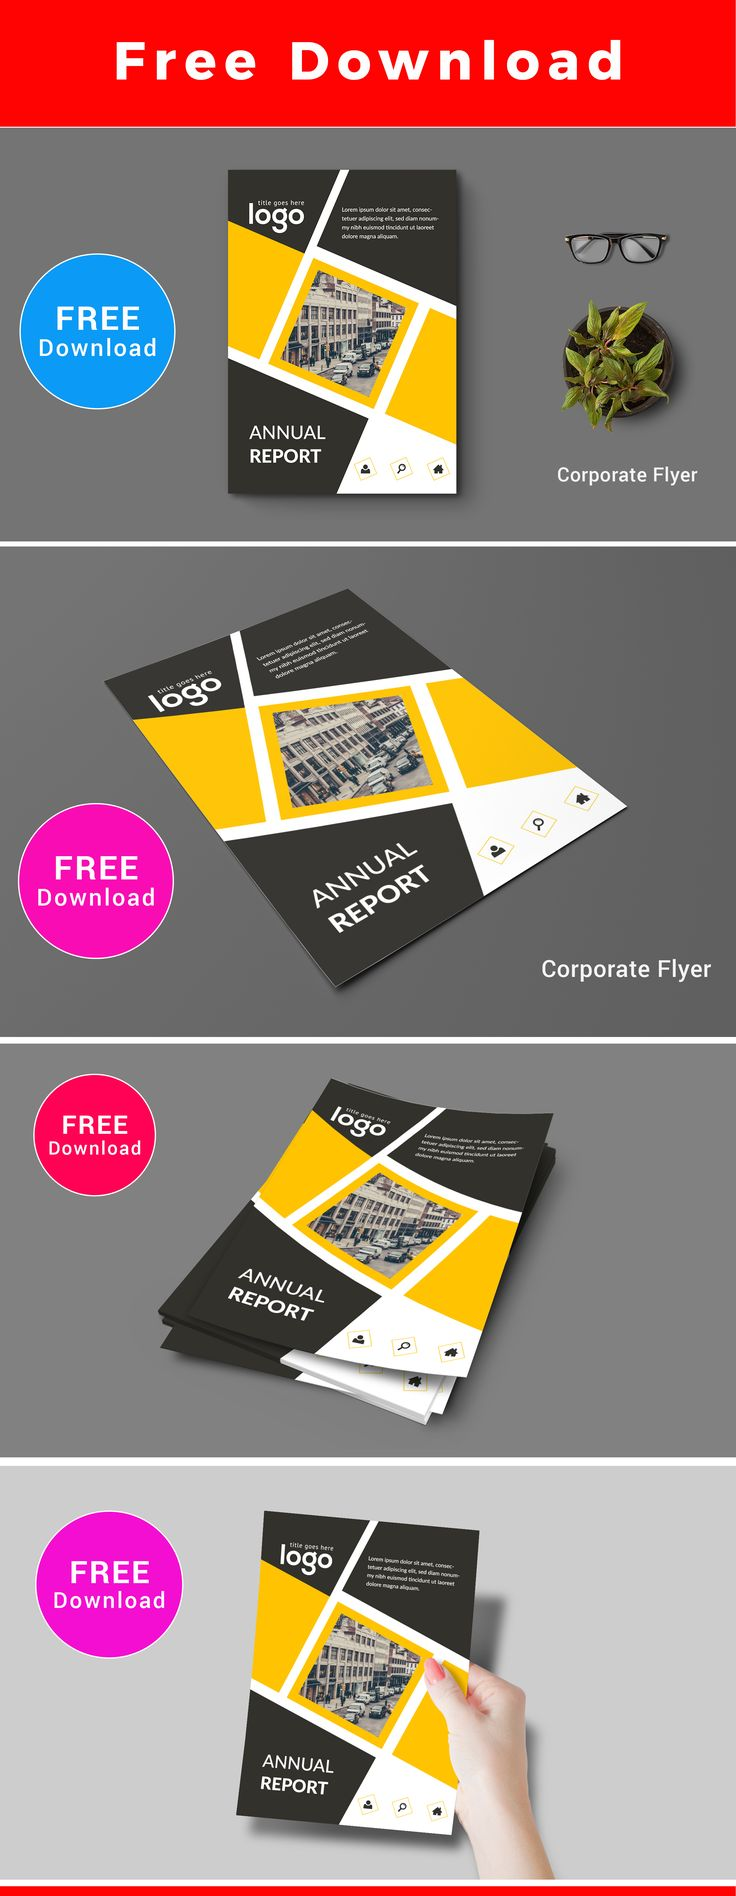 #download Free Flyer #flyer #corporate #business #education